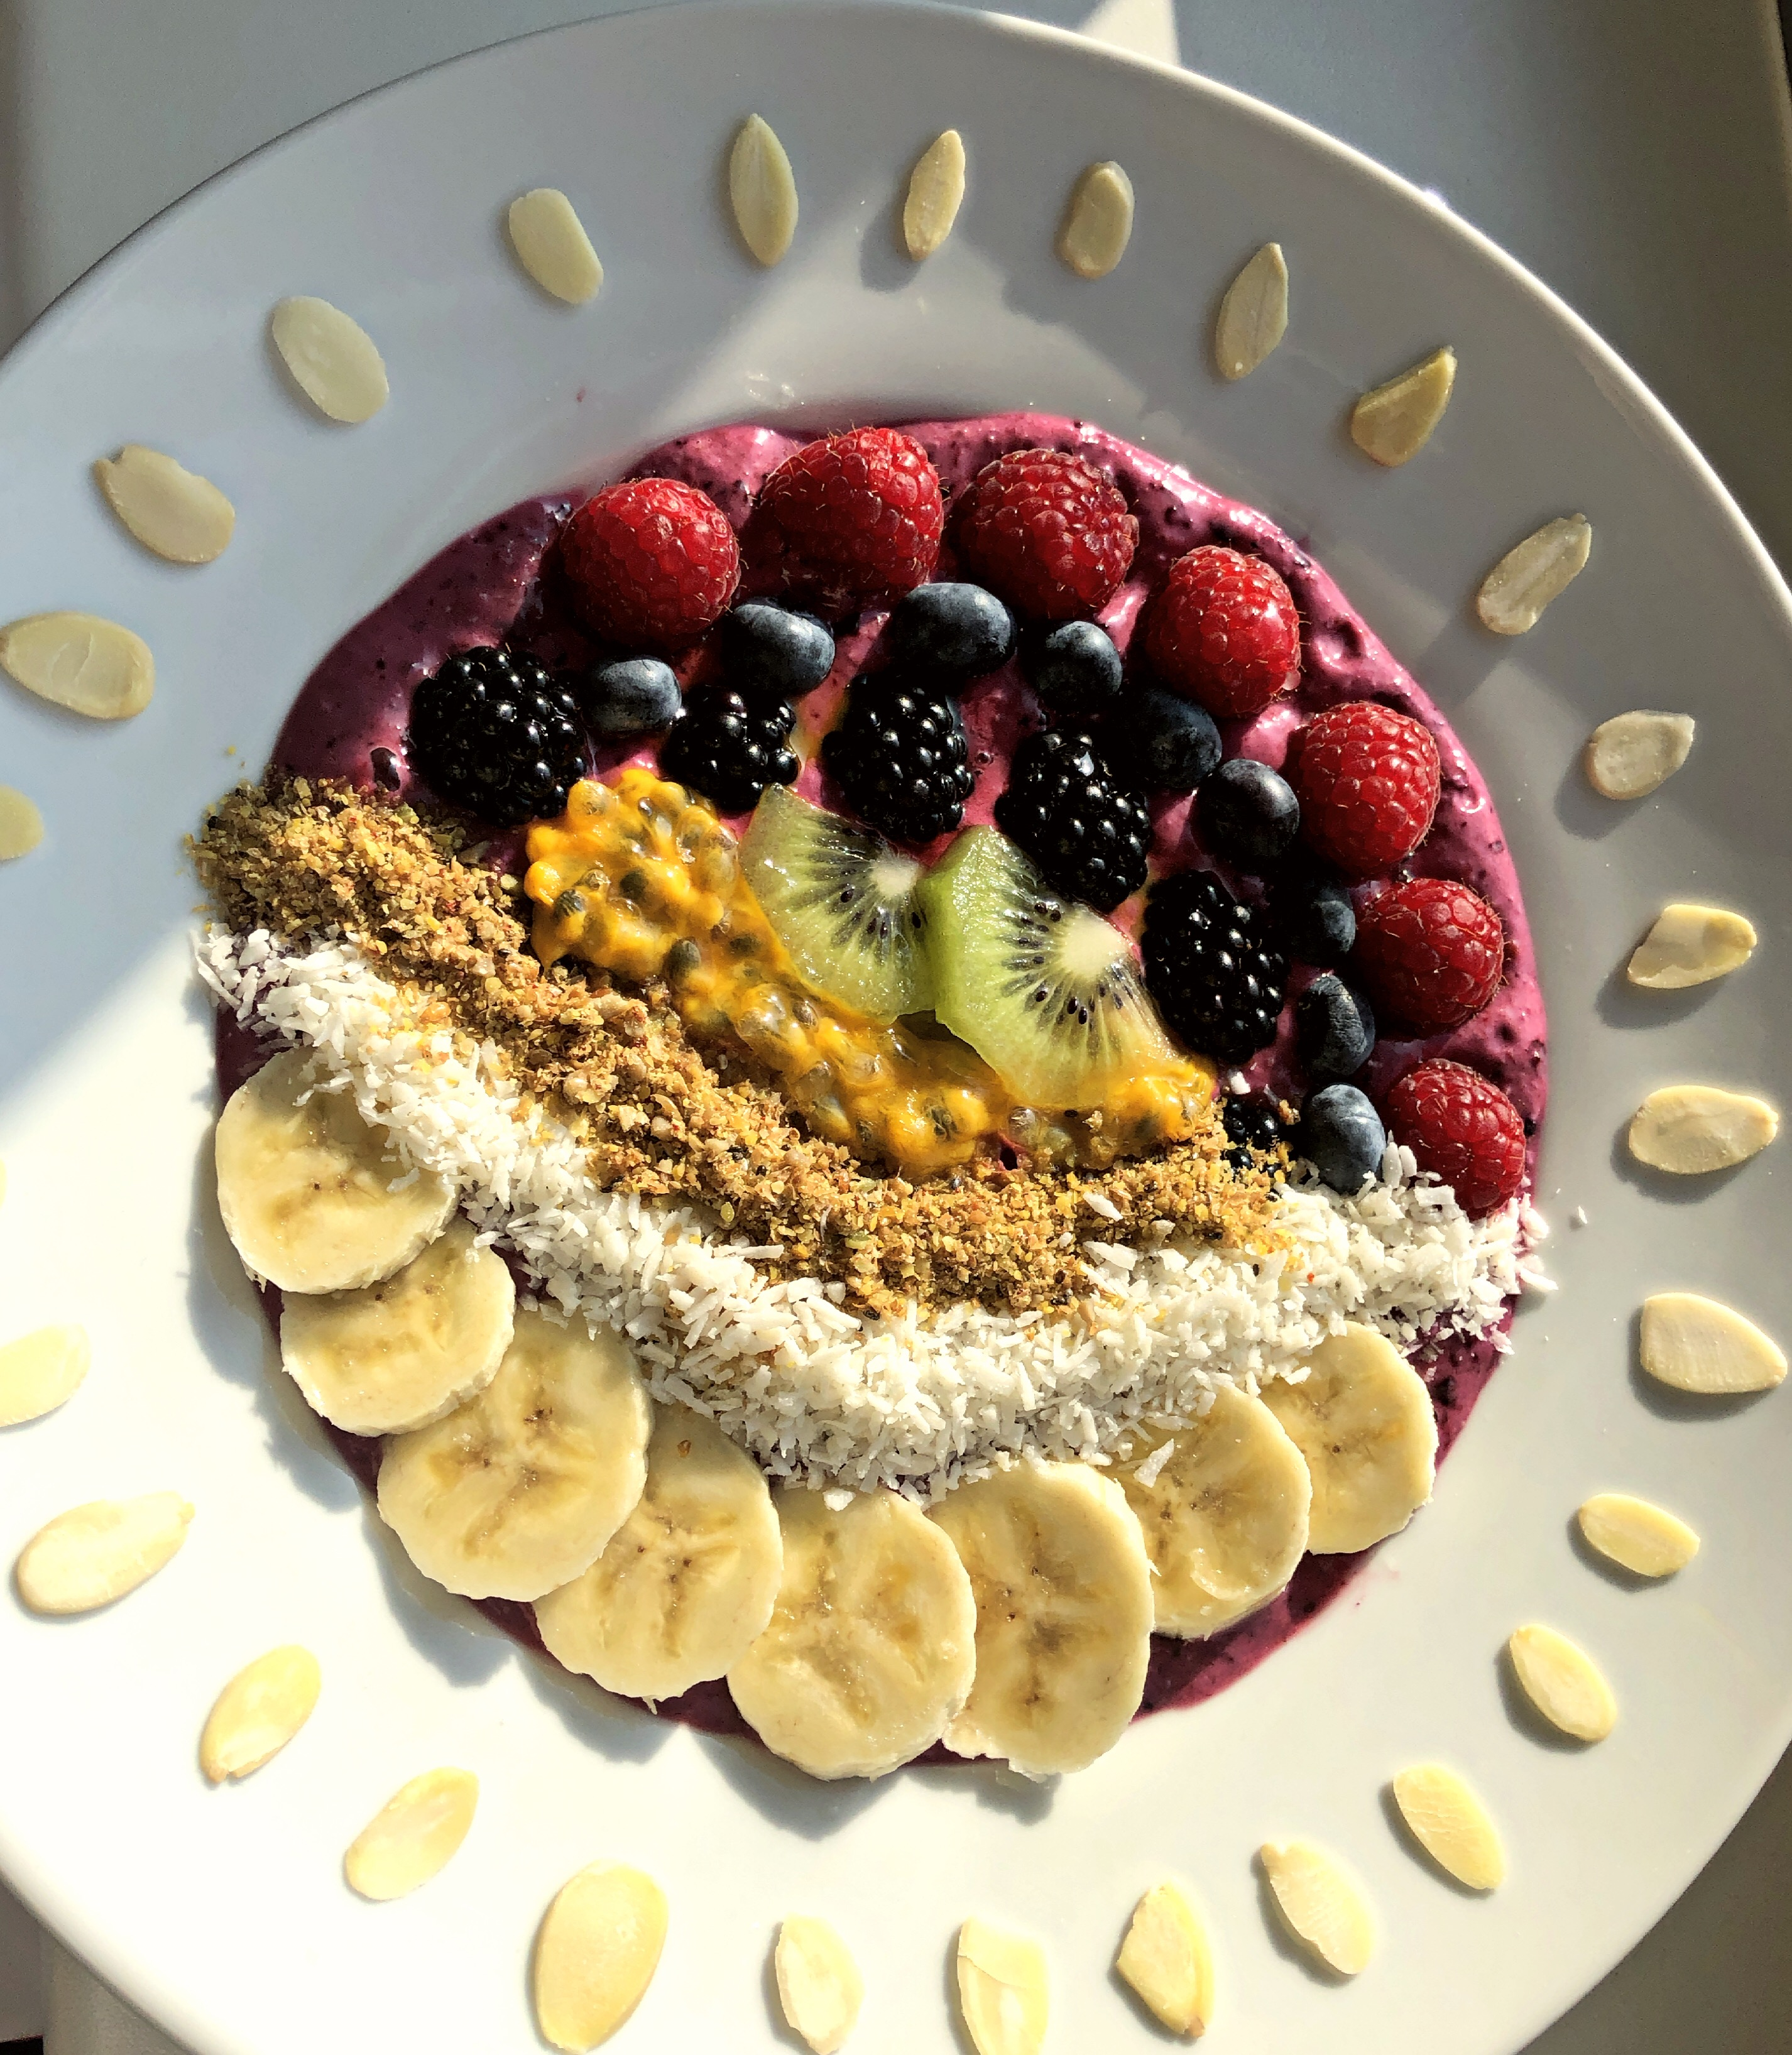 09 Smoothiebowl